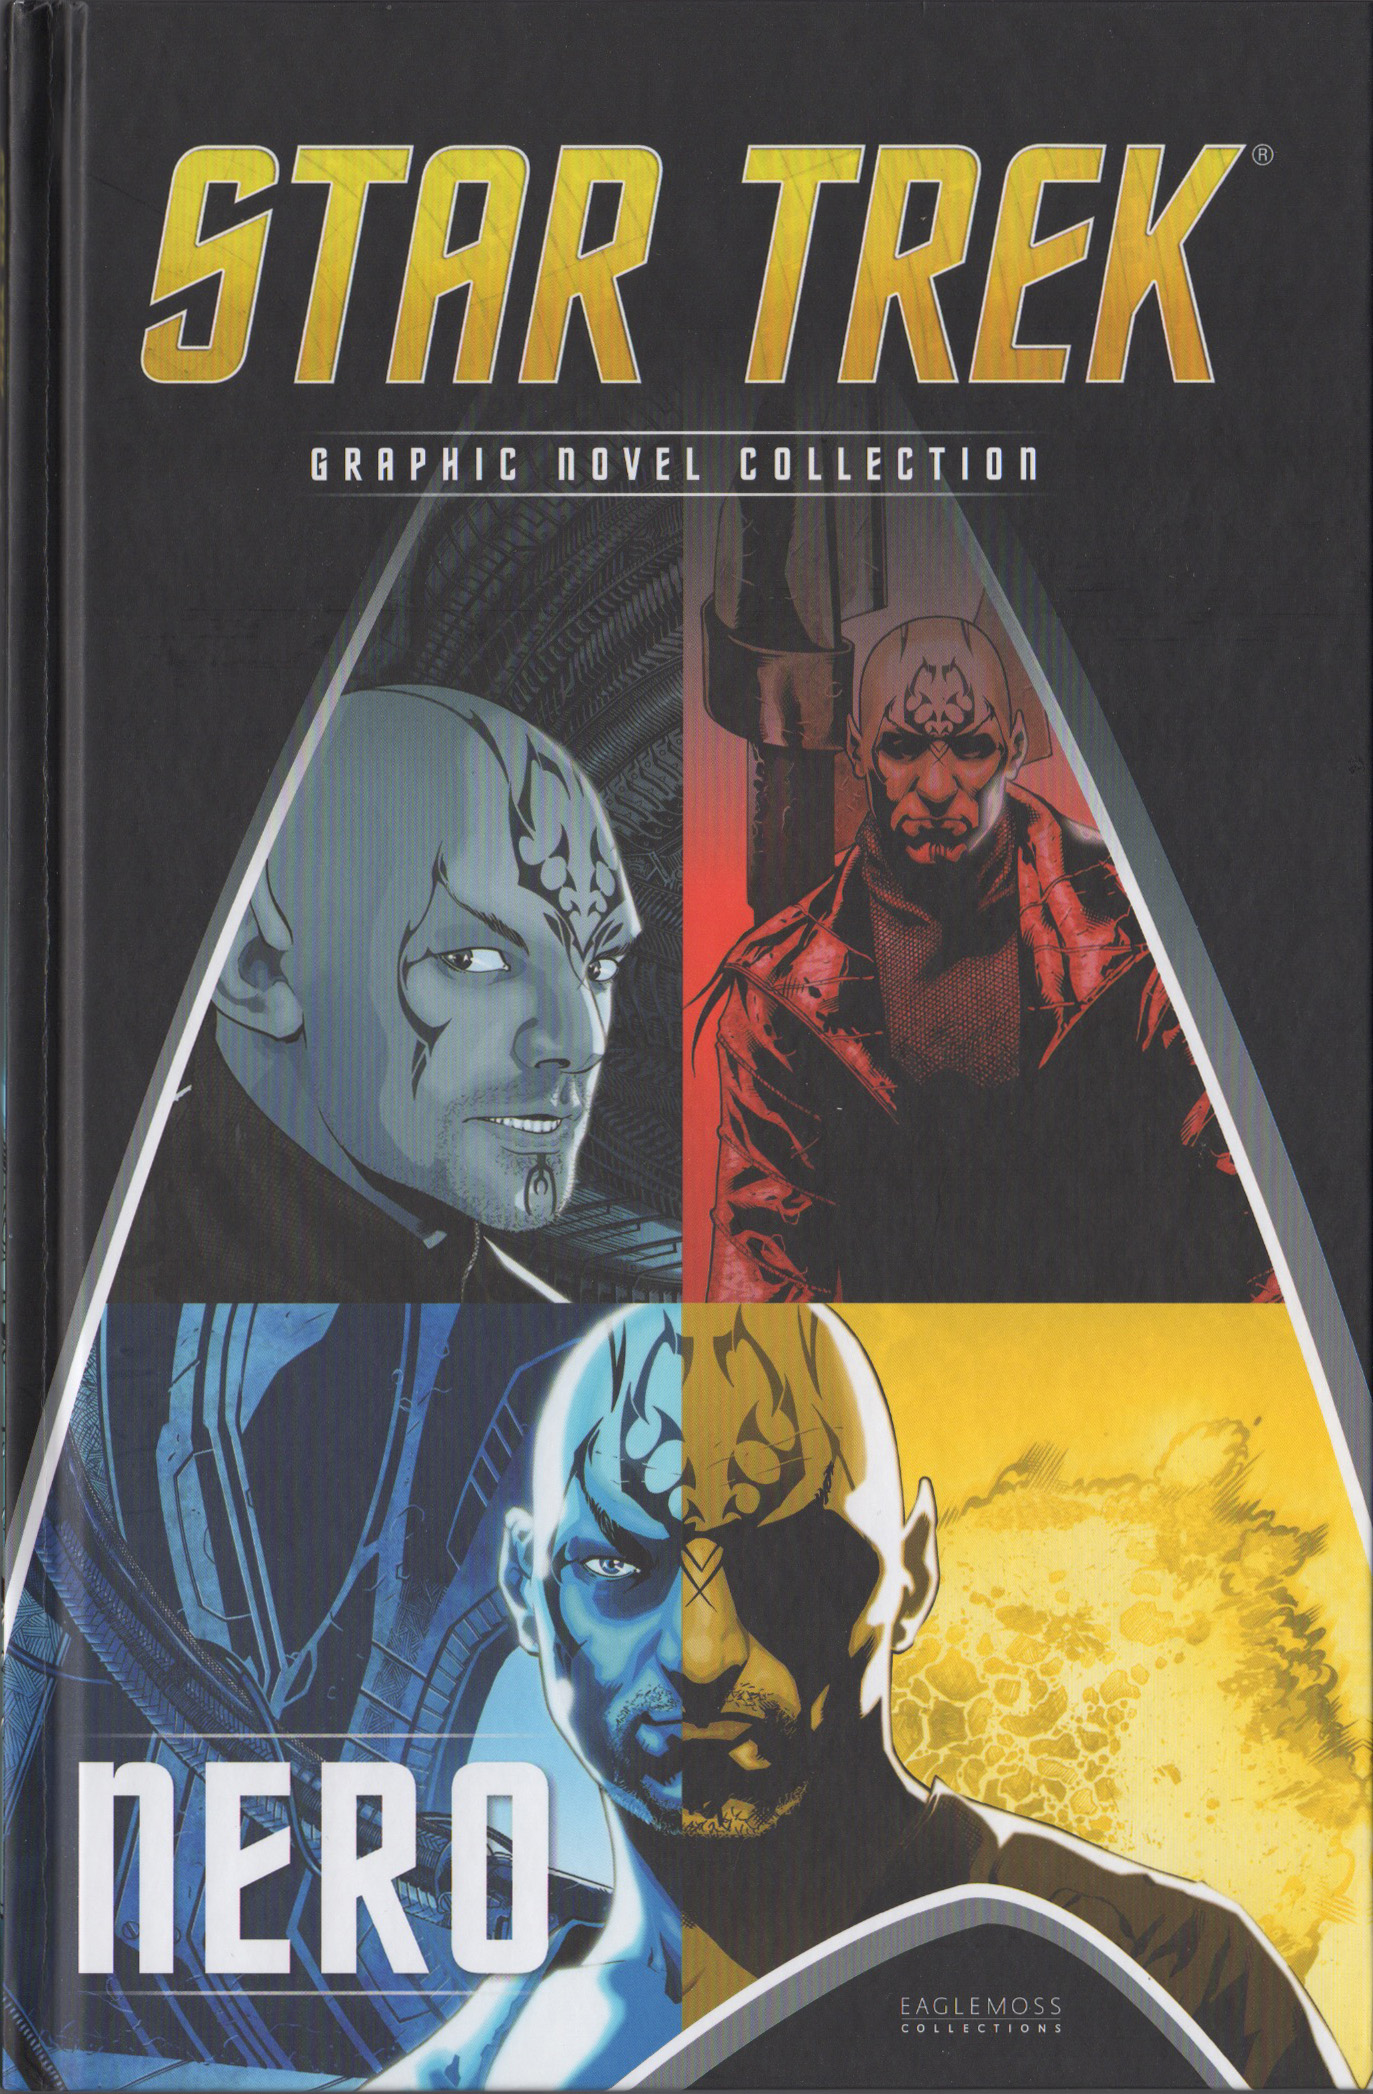 Eaglemoss Graphic Novel Collection #6